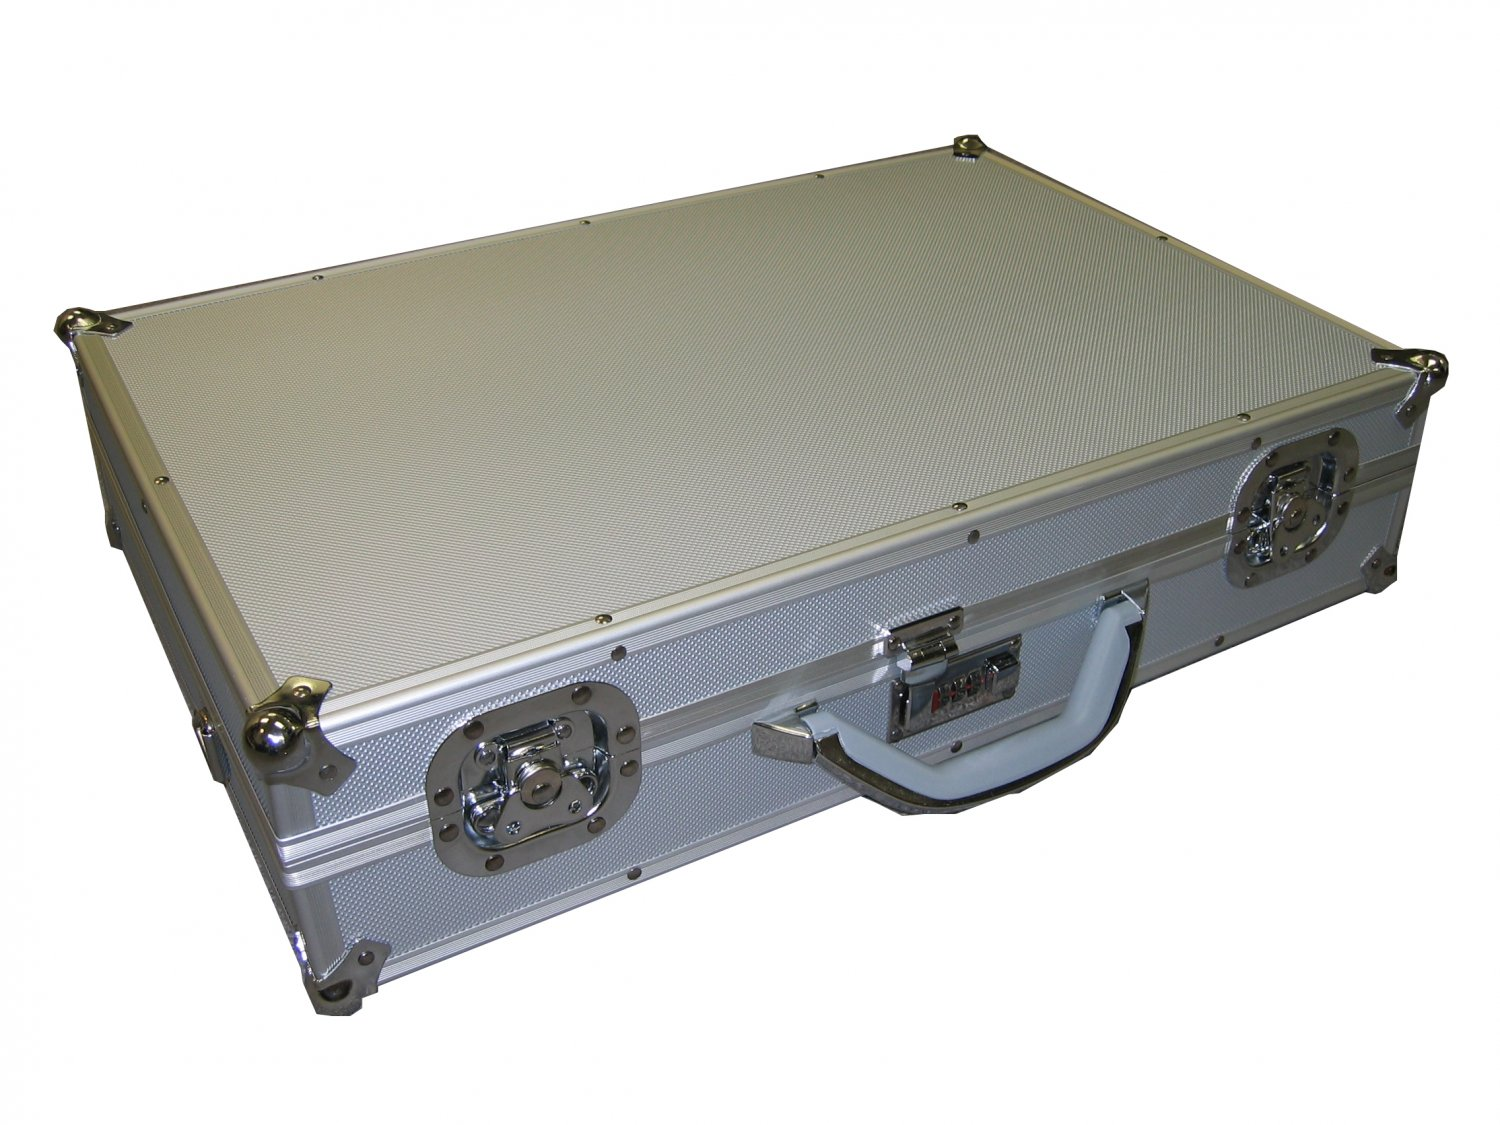 Silver Aluminum Multi purpose Case For Tool/Camera/Hardware and More Free Shipping